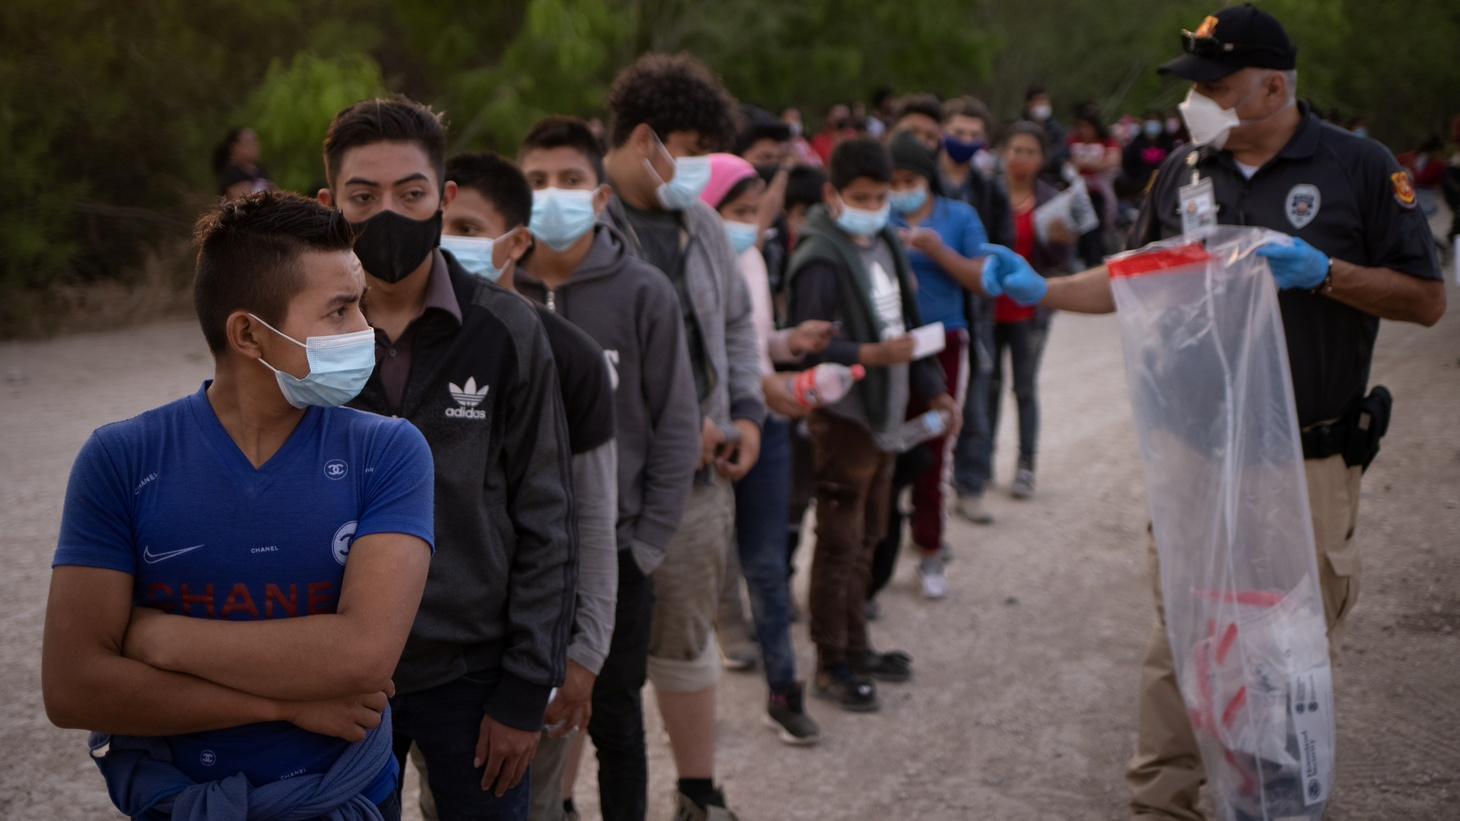 Unaccompanied minors from Central America line up to be transported by U.S. Customs Border Protection officials, after crossing the Rio Grande river into the United States from Mexico on rafts in Penitas, Texas, U.S., March 26, 2021. Picture taken March 26, 2021.